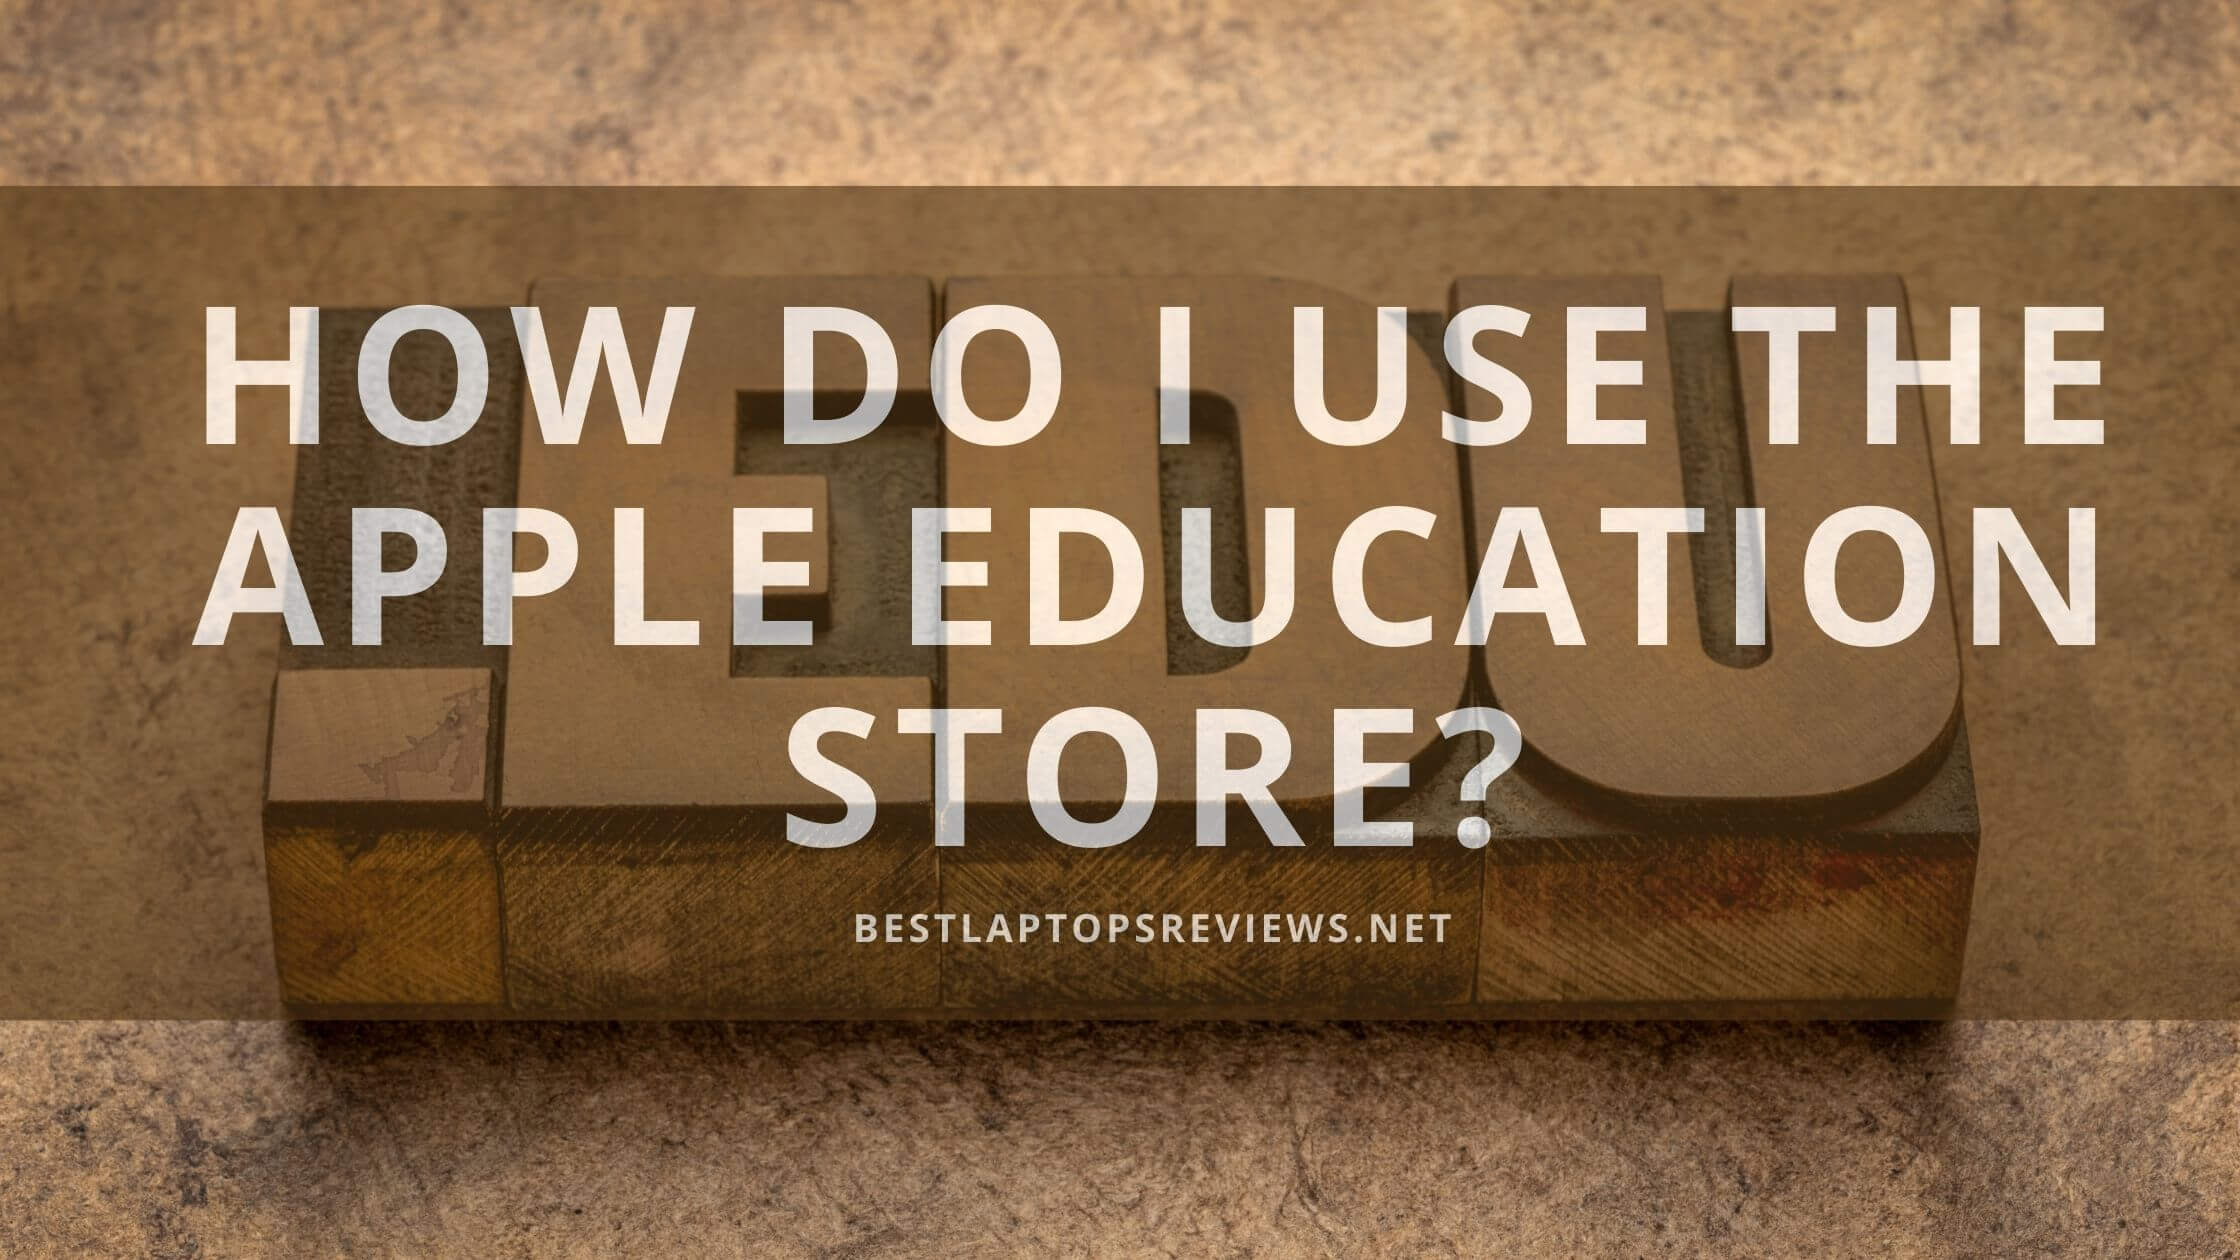 How do I use the Apple Education Store?